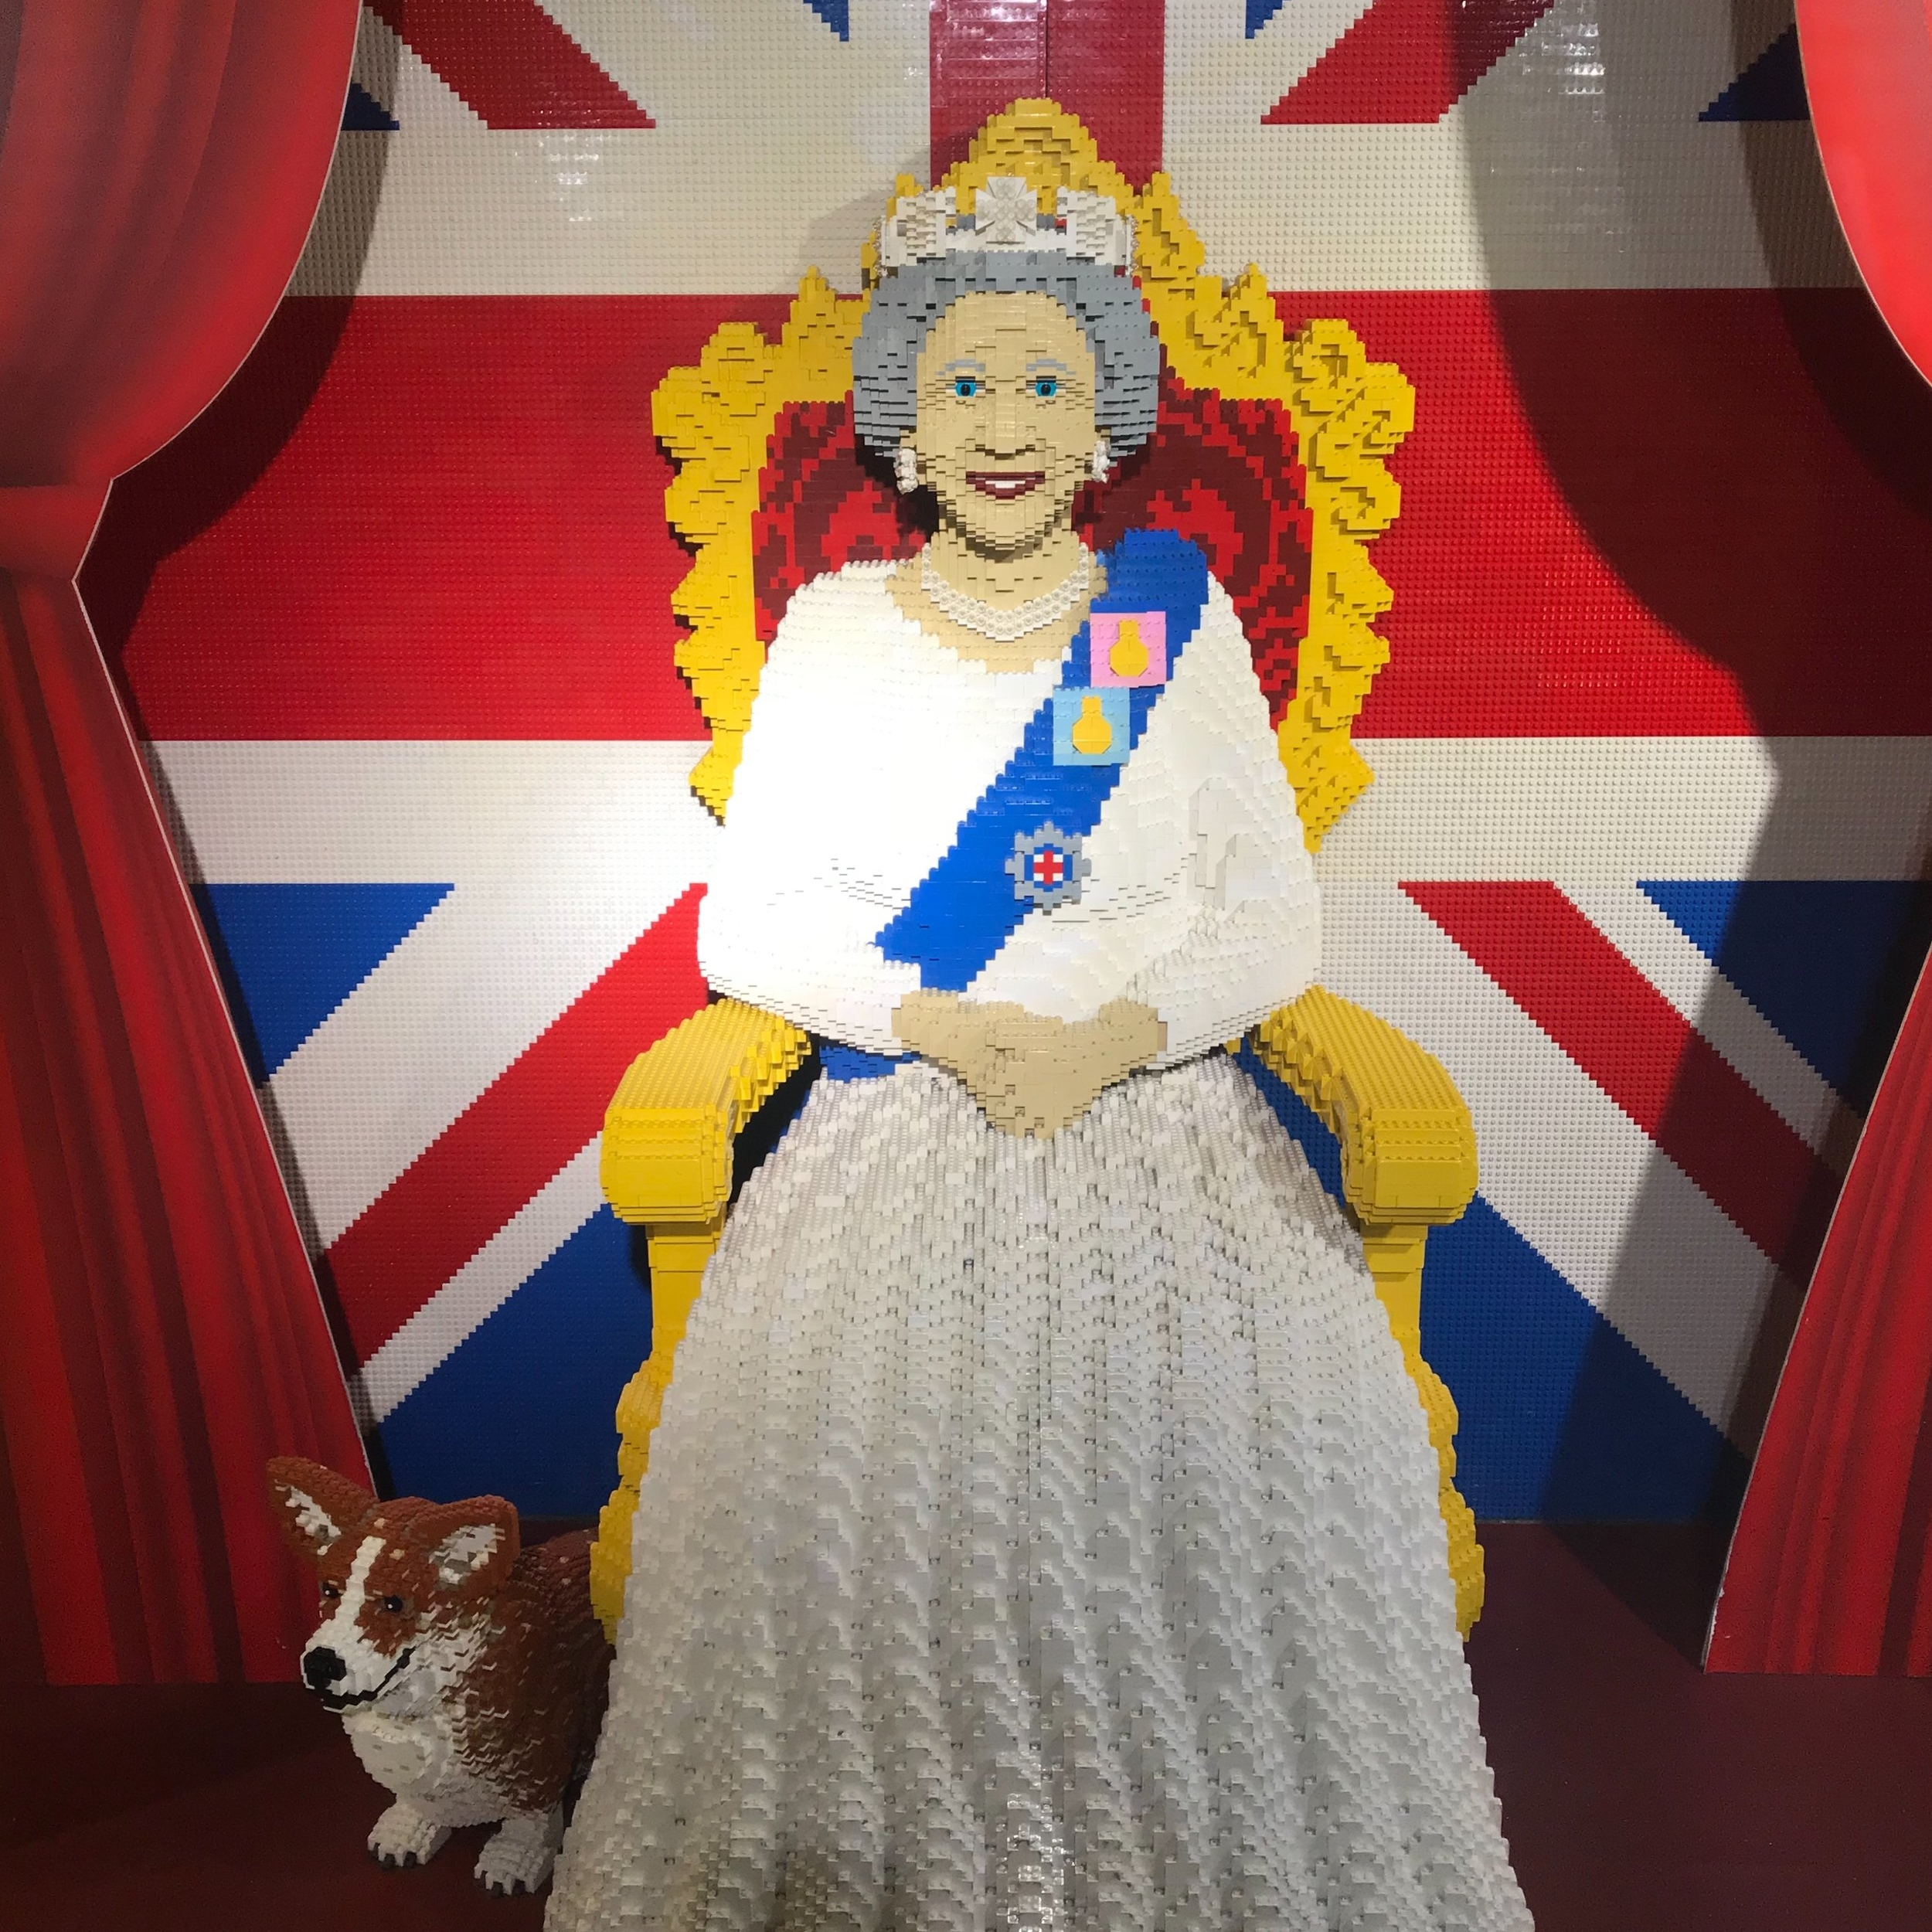 Lego Queen from Hamley's, London. The Doubtful Traveller